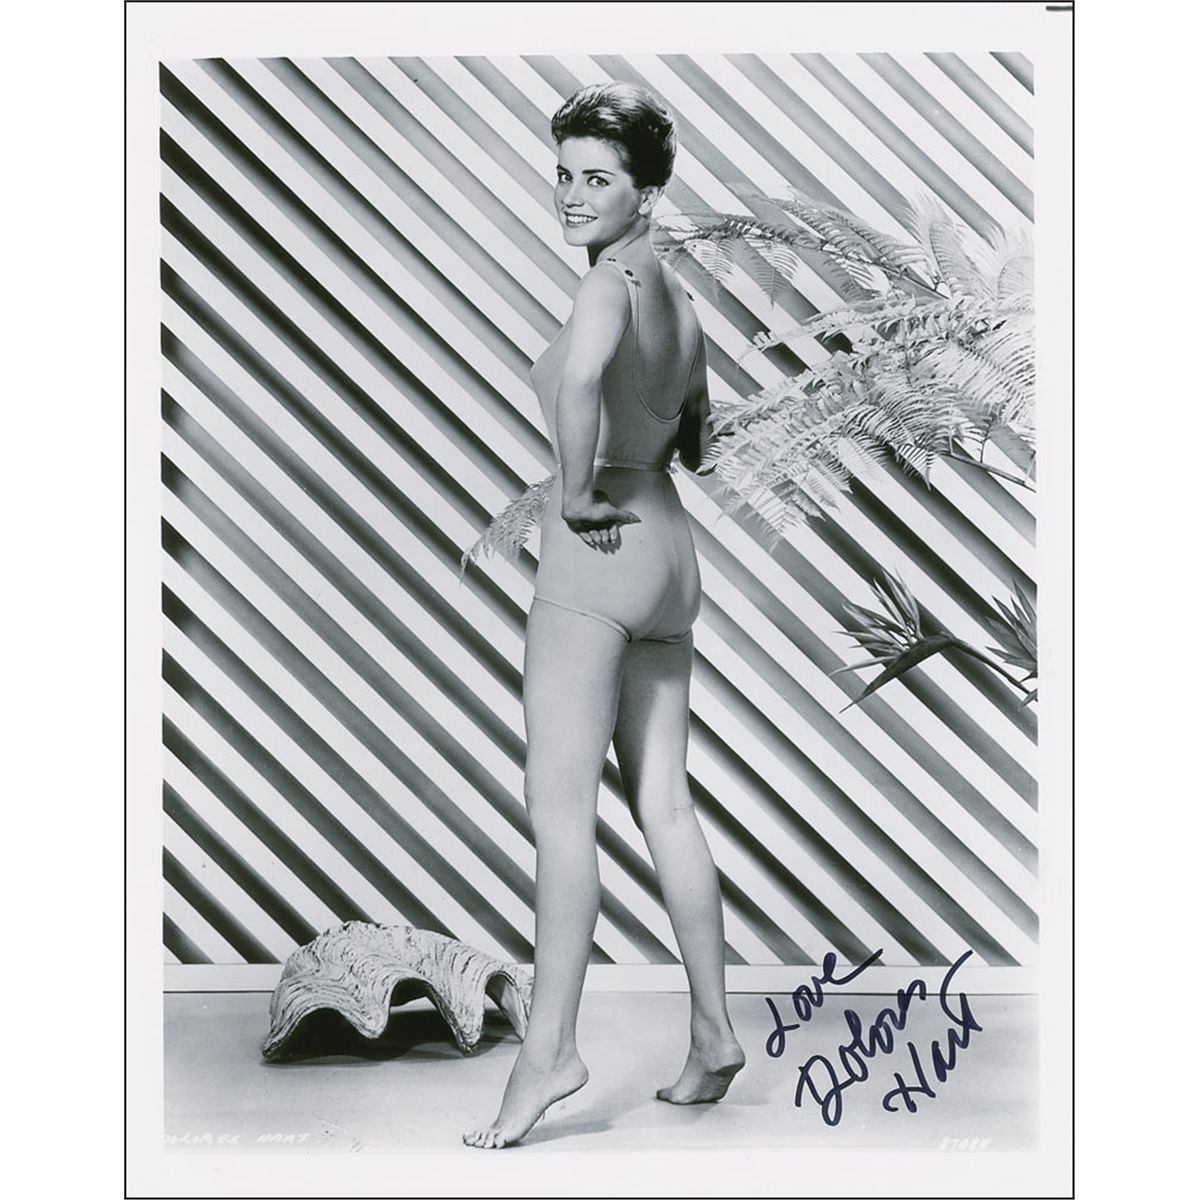 Discussion on this topic: Julie Payne (actress, born 1940), dolores-hart/